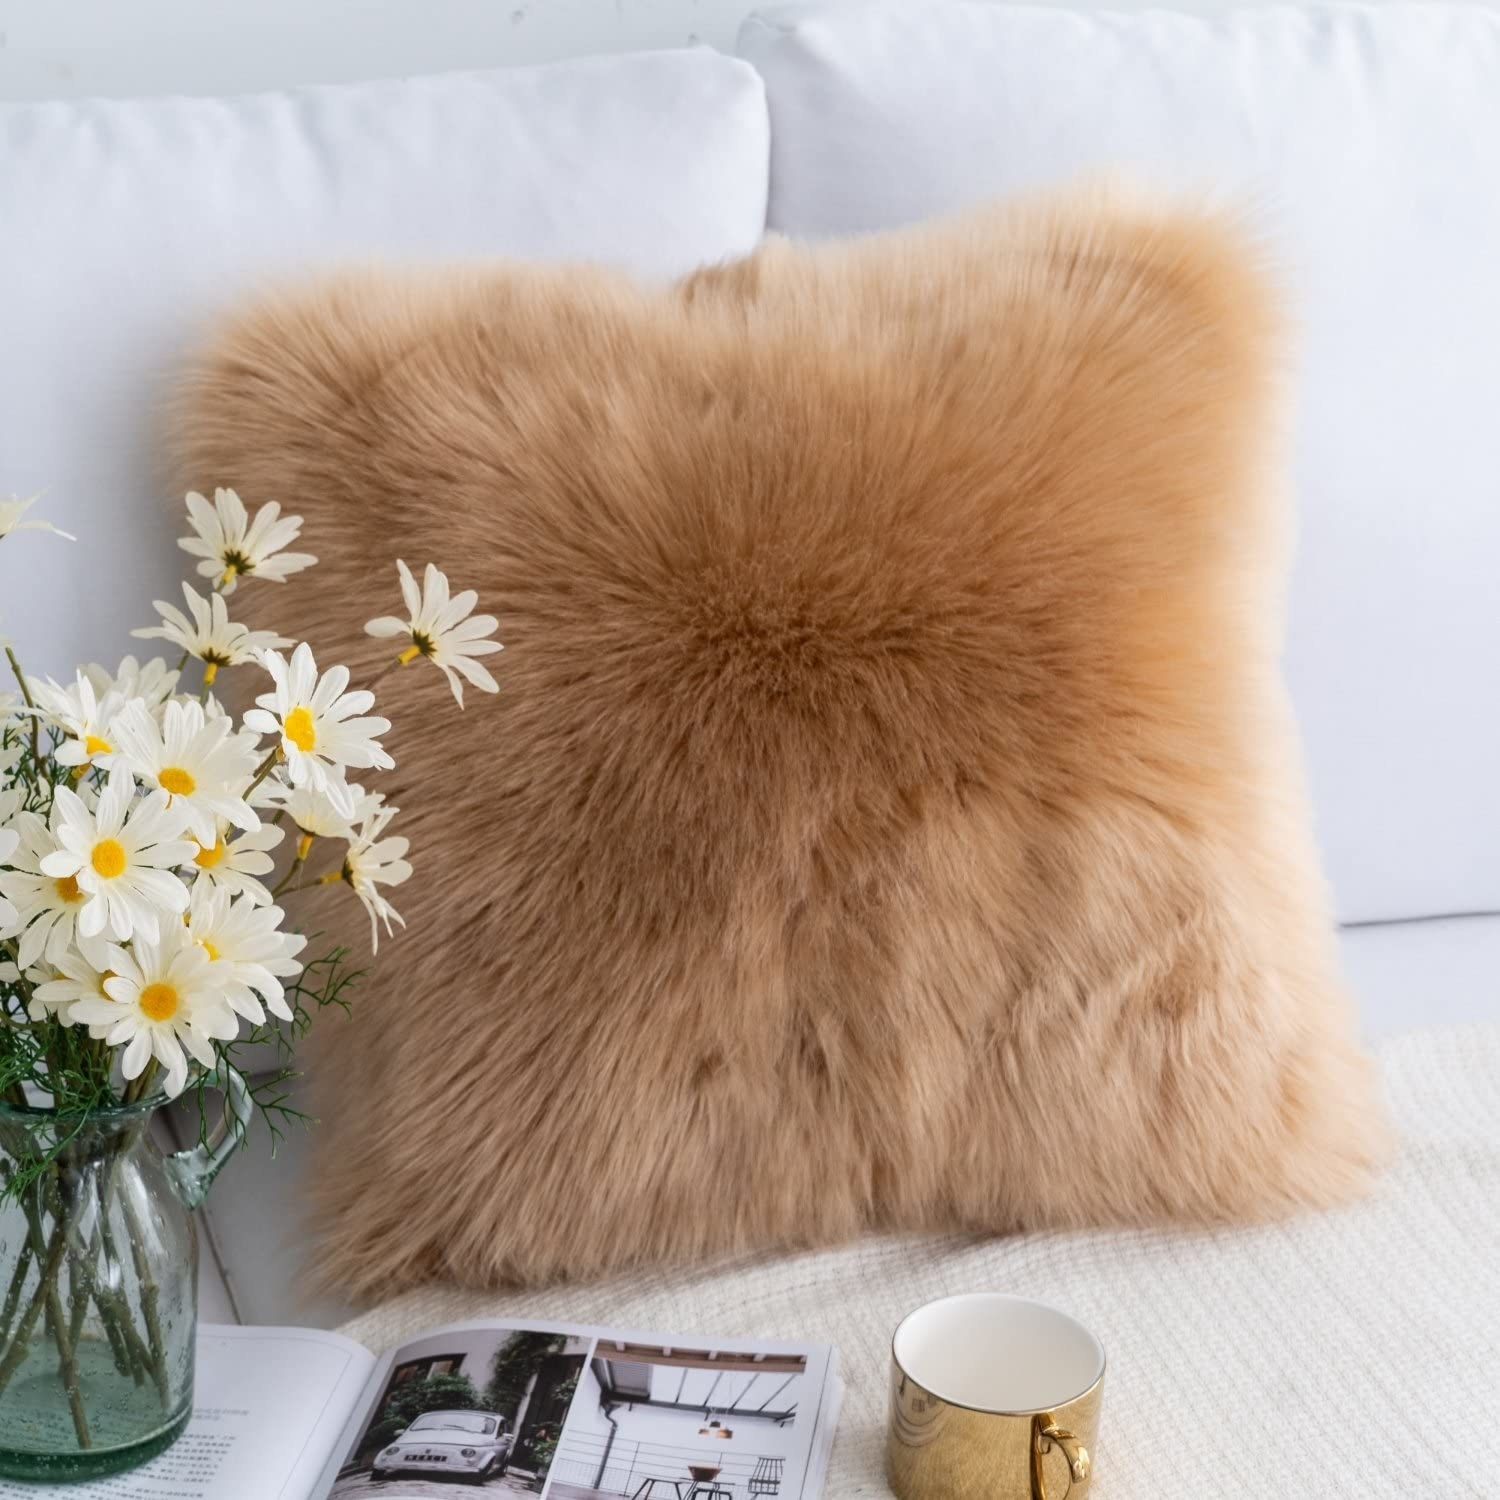 faux-fur fluffy pillow styled on couch